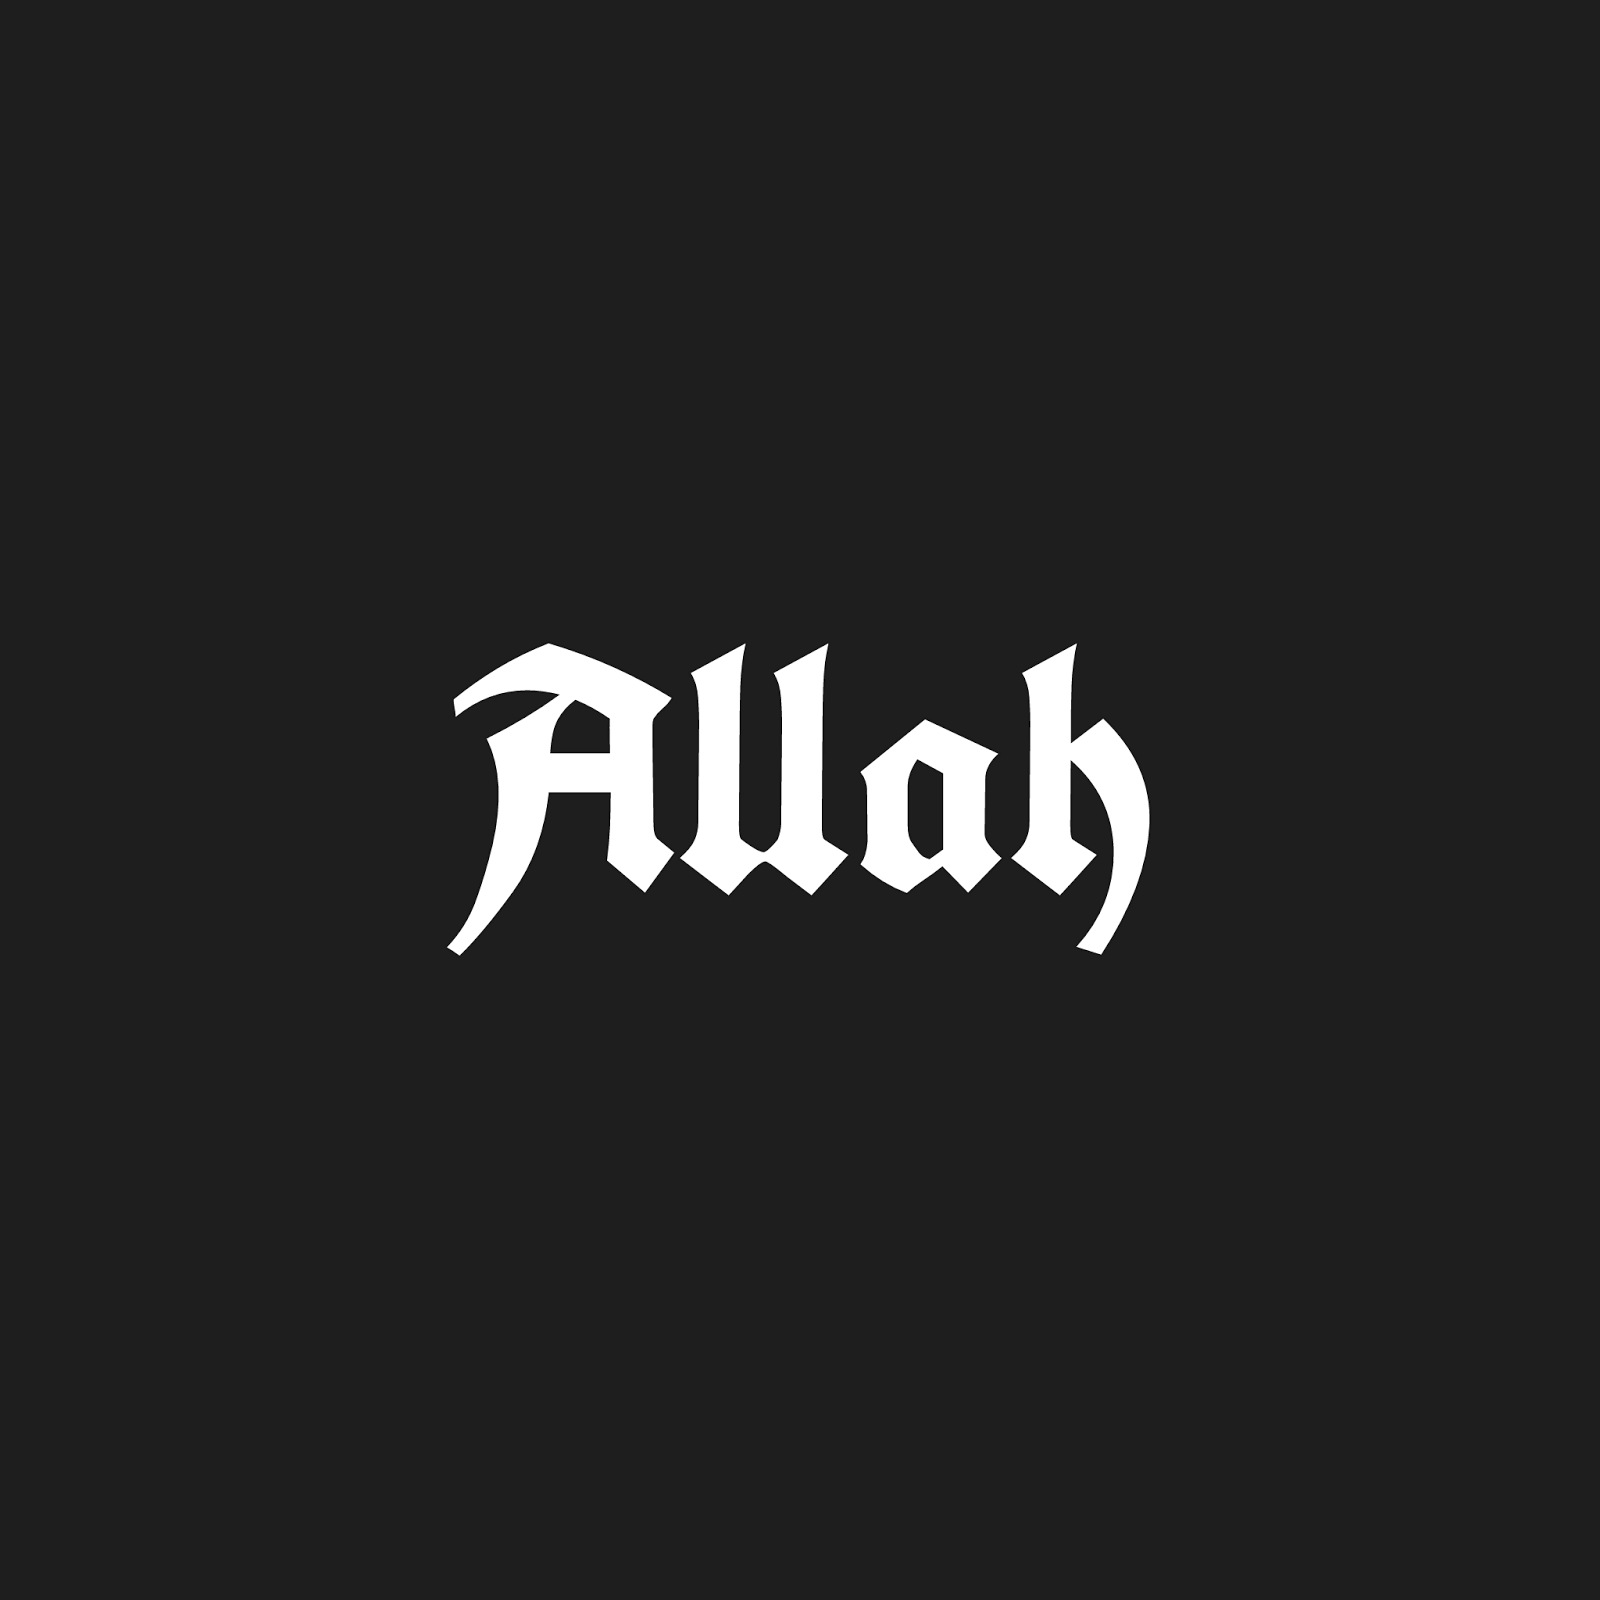 allah name hd wallpaper for pc in different fonts - islam